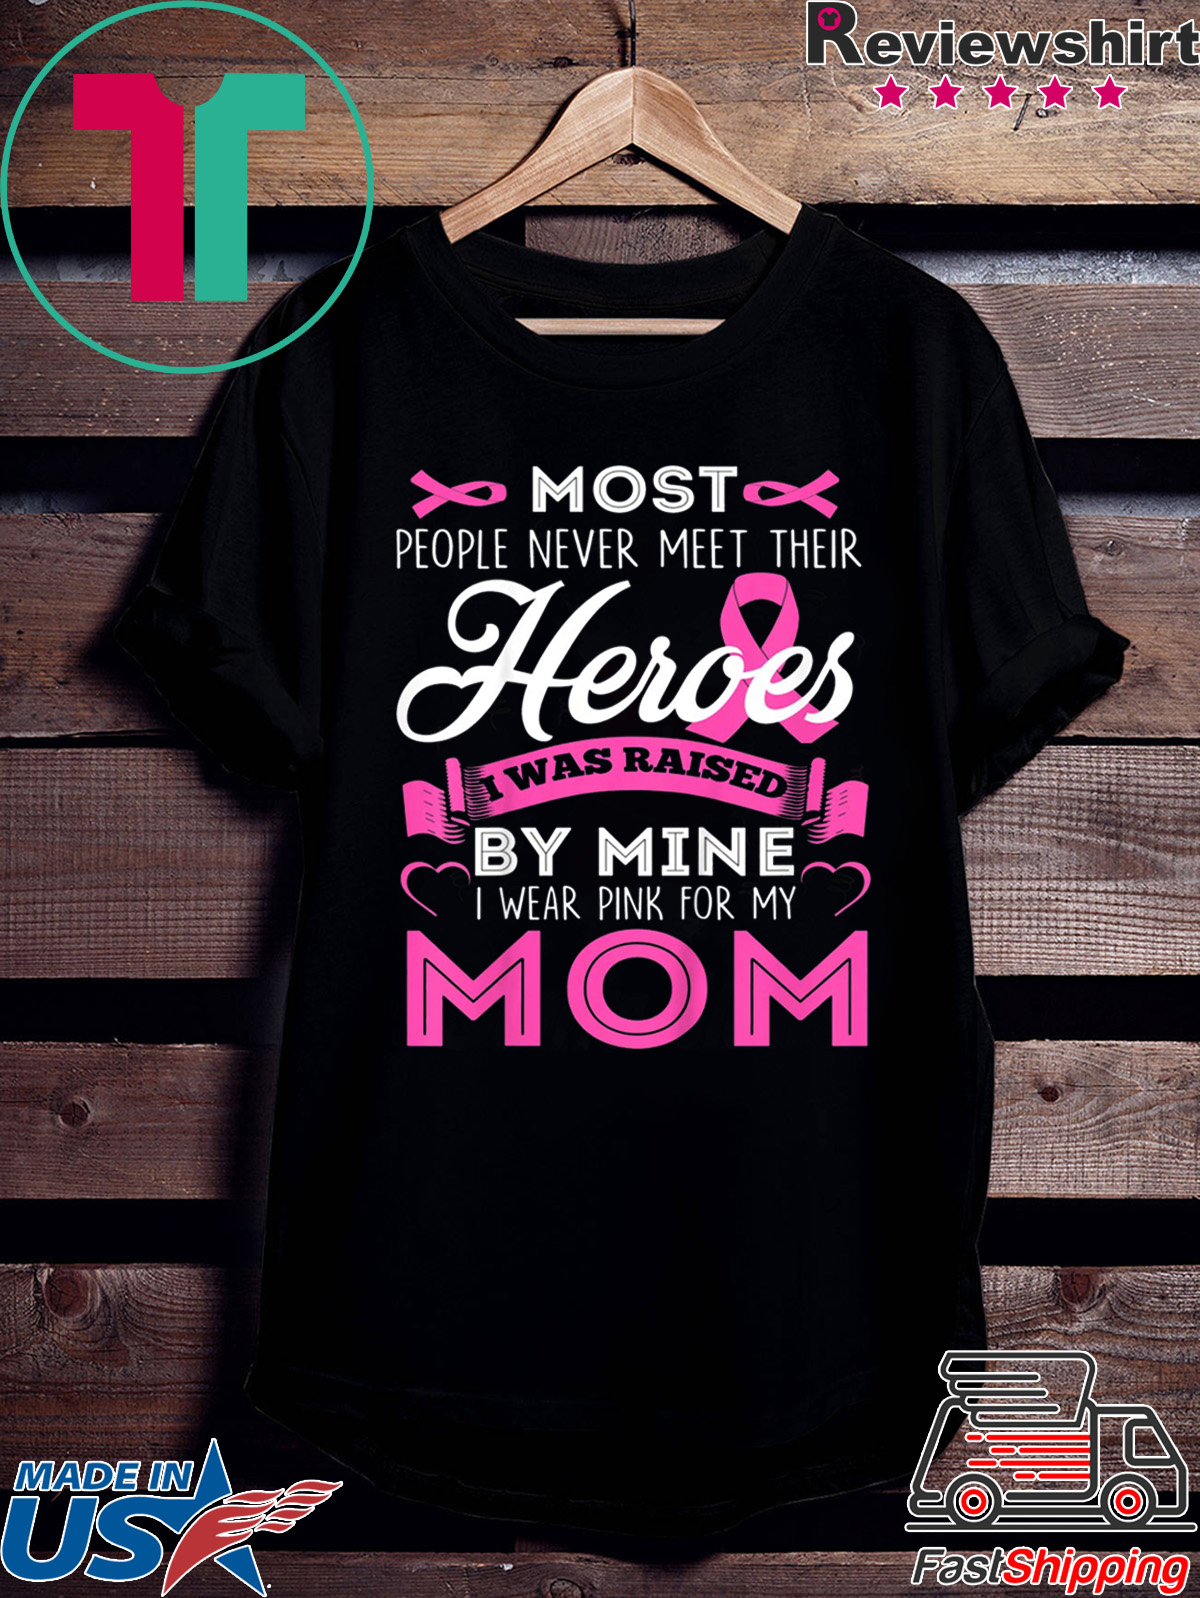 I Wear Pink for My Dad Cancer Awareness Support Gift for Cancer Mens Shirts